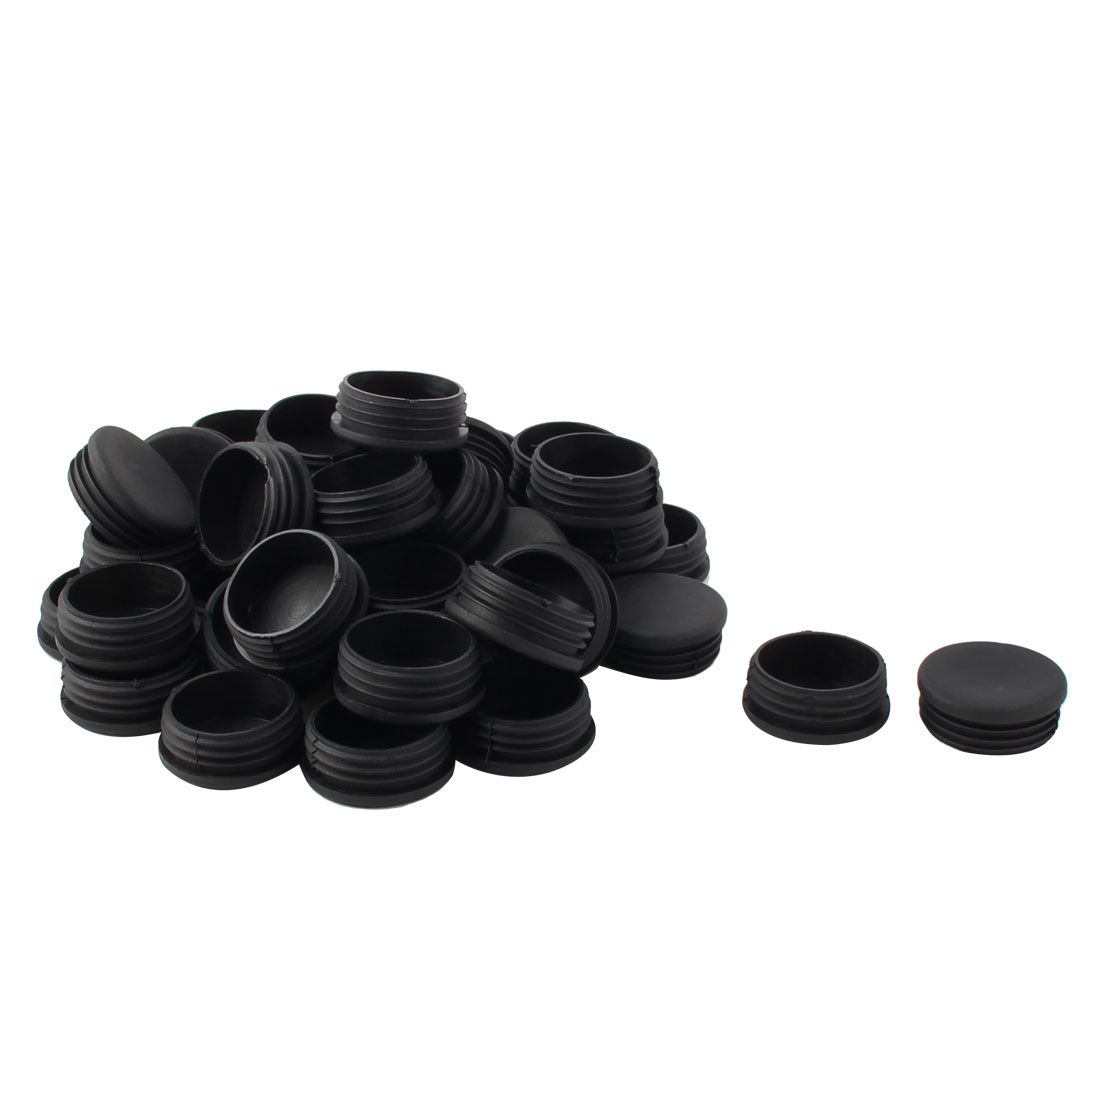 Plastic Round Tube Insert Blanking End Protectors Caps Black 50mm 45 PCS